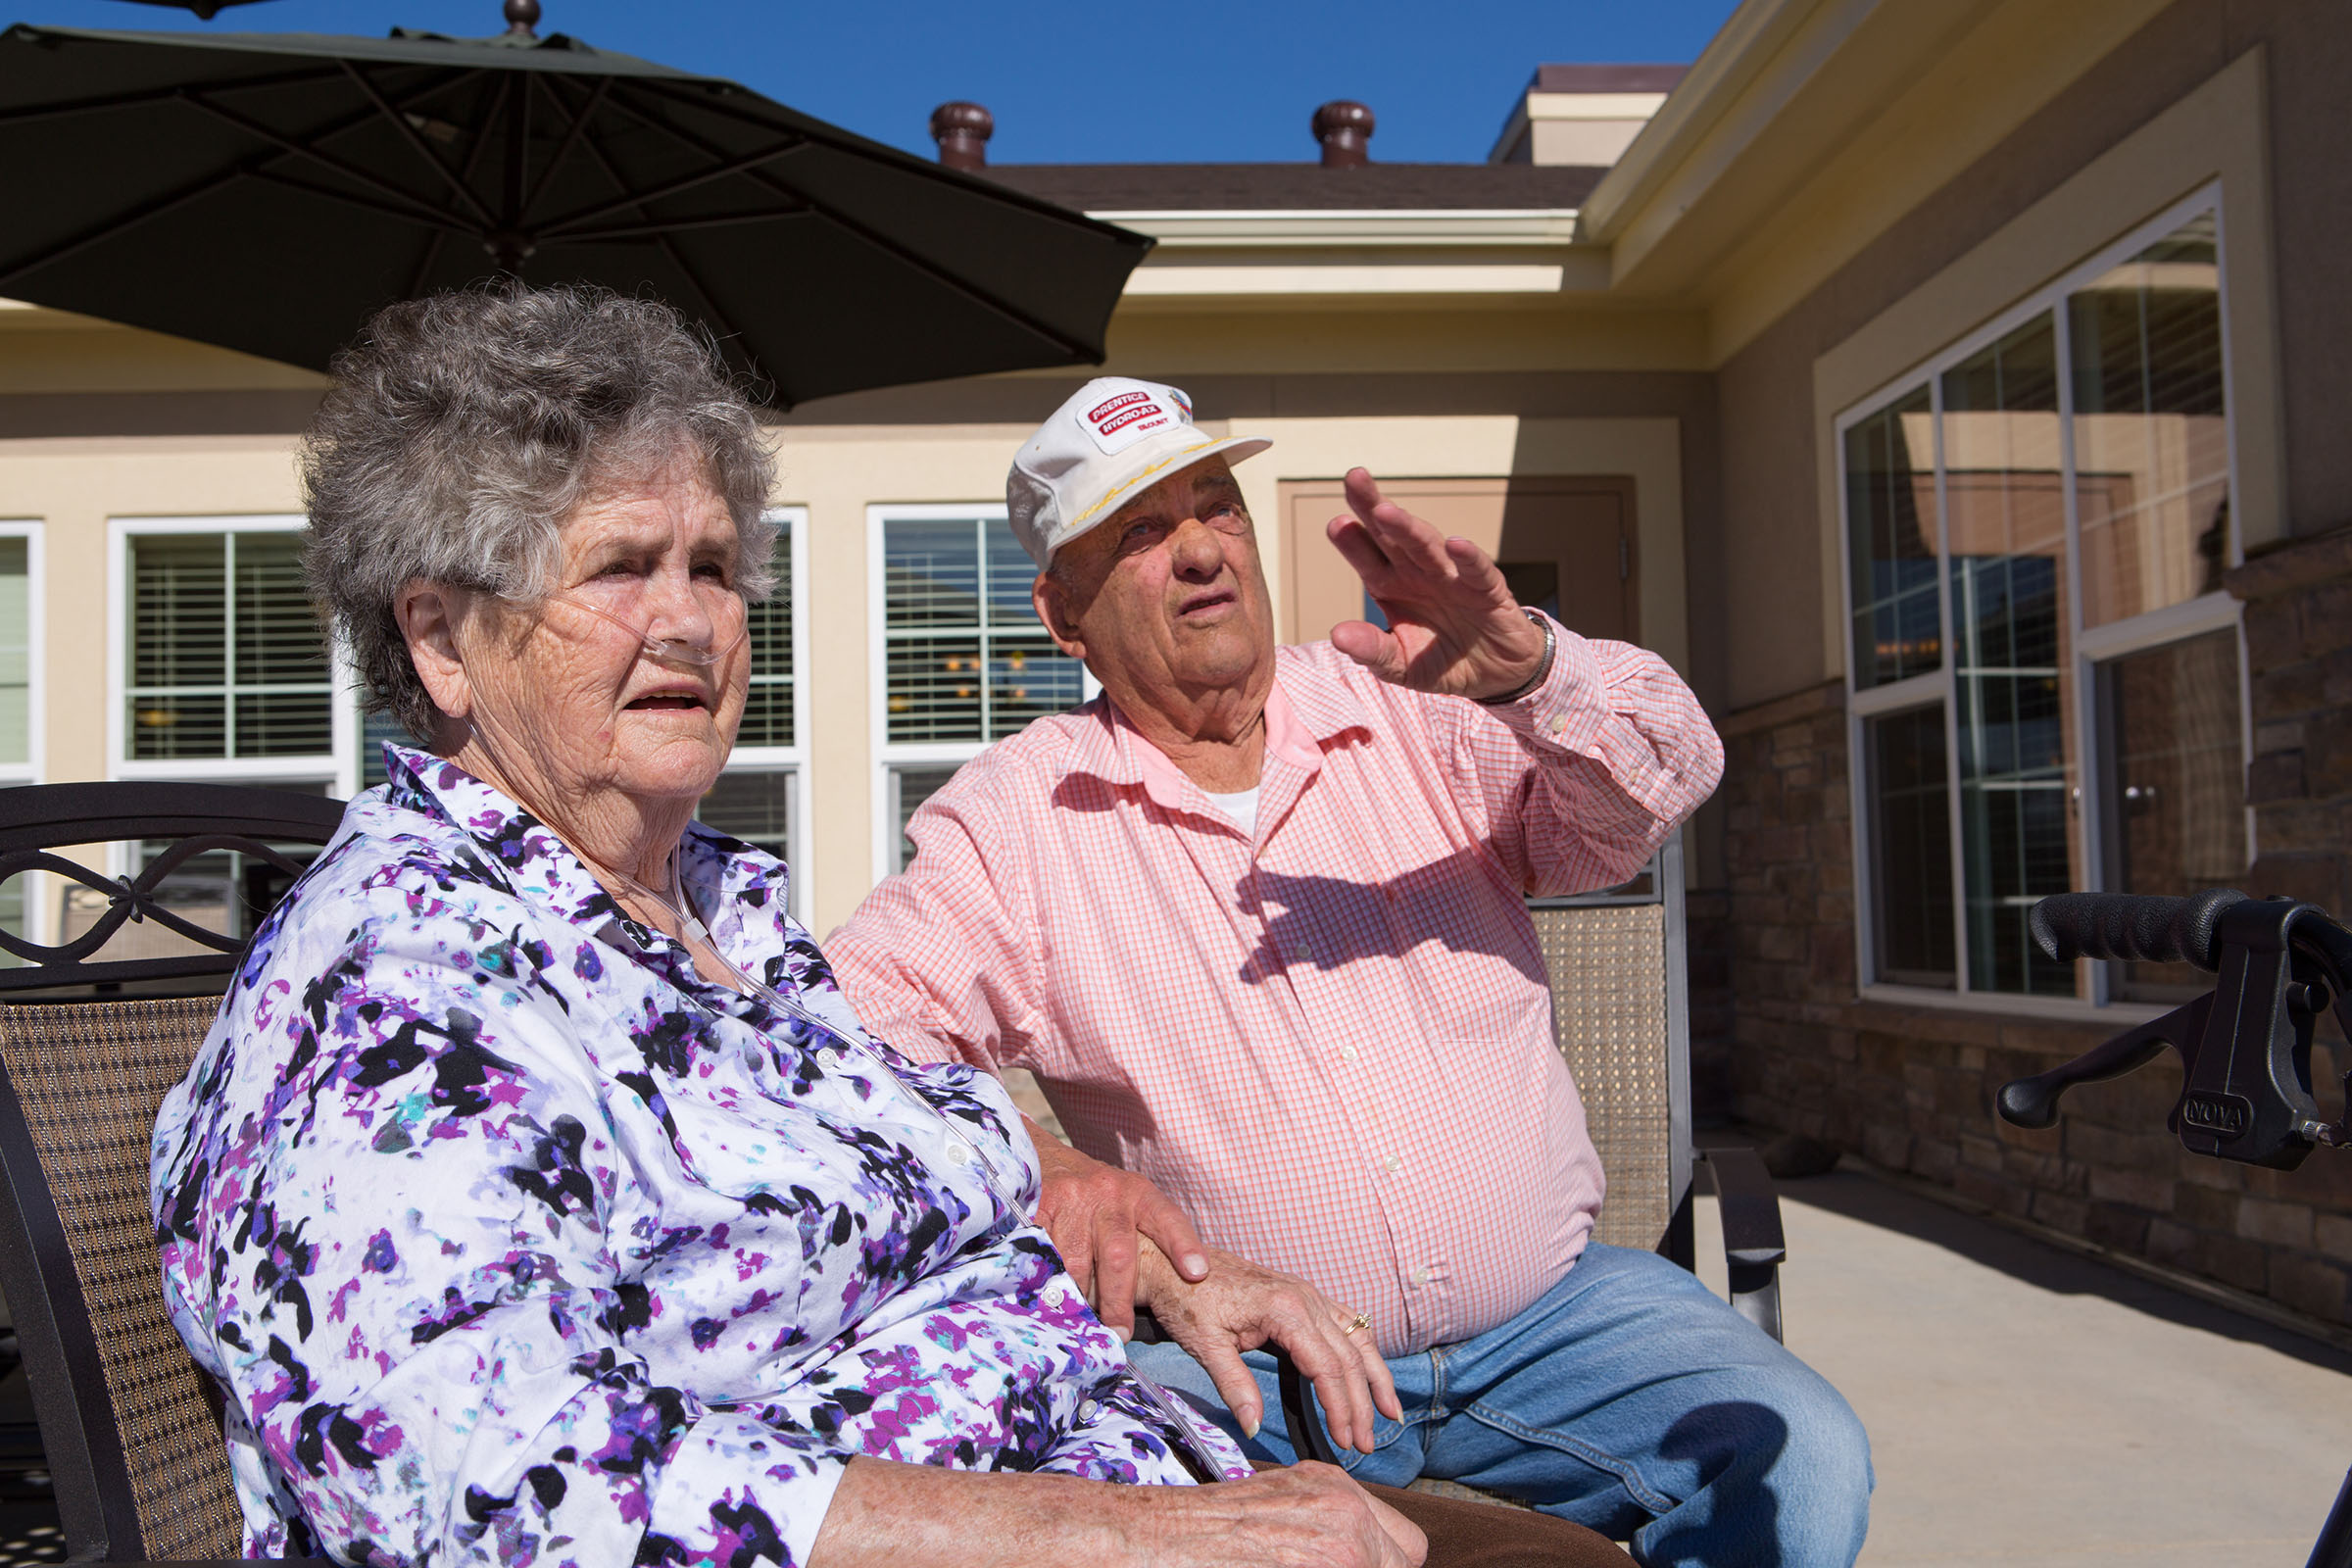 An older woman and man sit outside on the patio